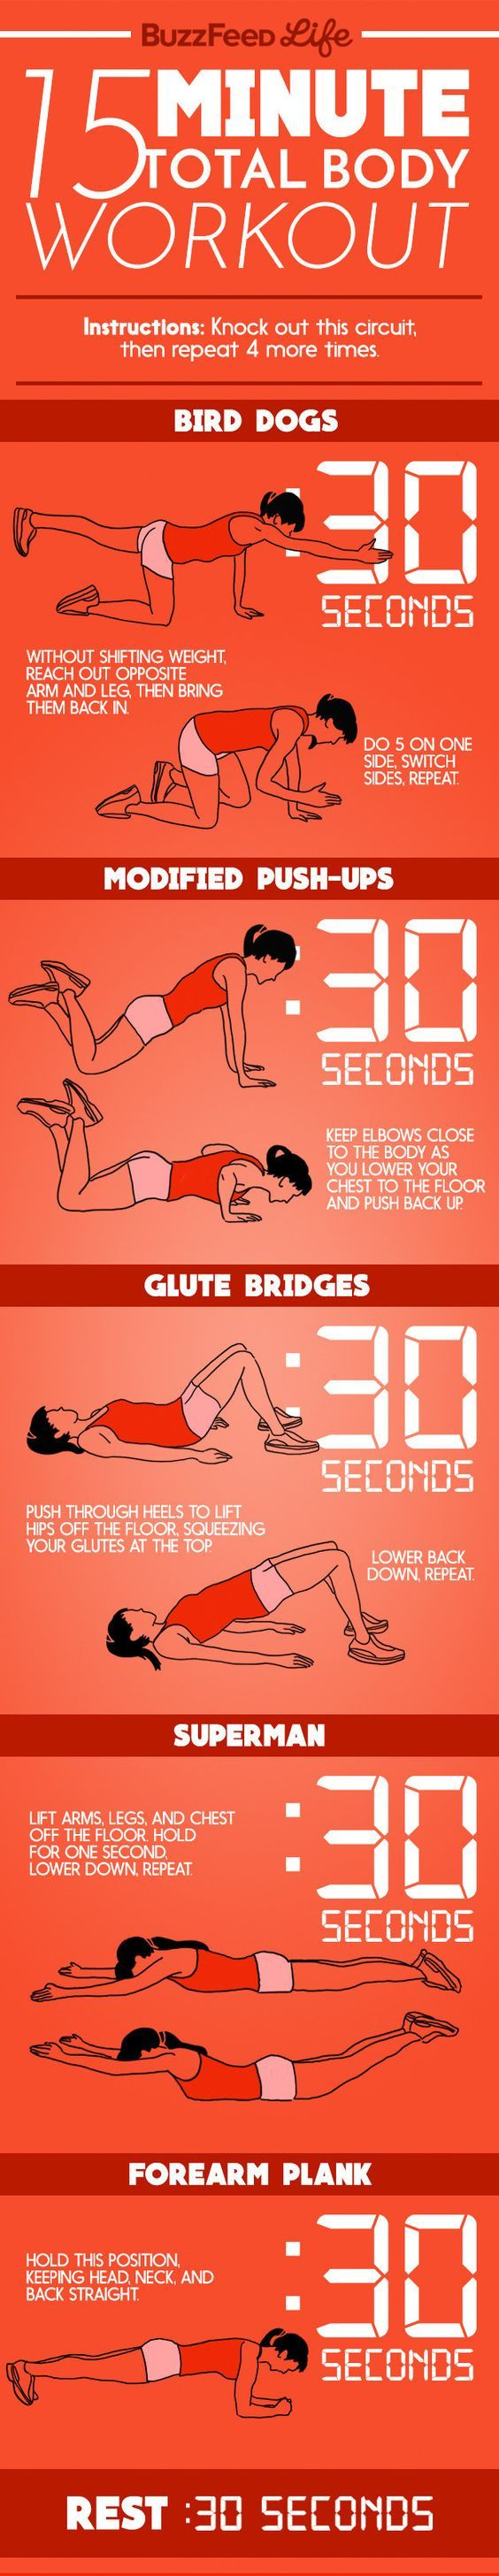 These 7 Lazy girl exercises are THE BEST! I've tried a few and I've ALREADY lost weight! This is such a AWESOME post! I'm so happy I found this! Definitely pinning for later!